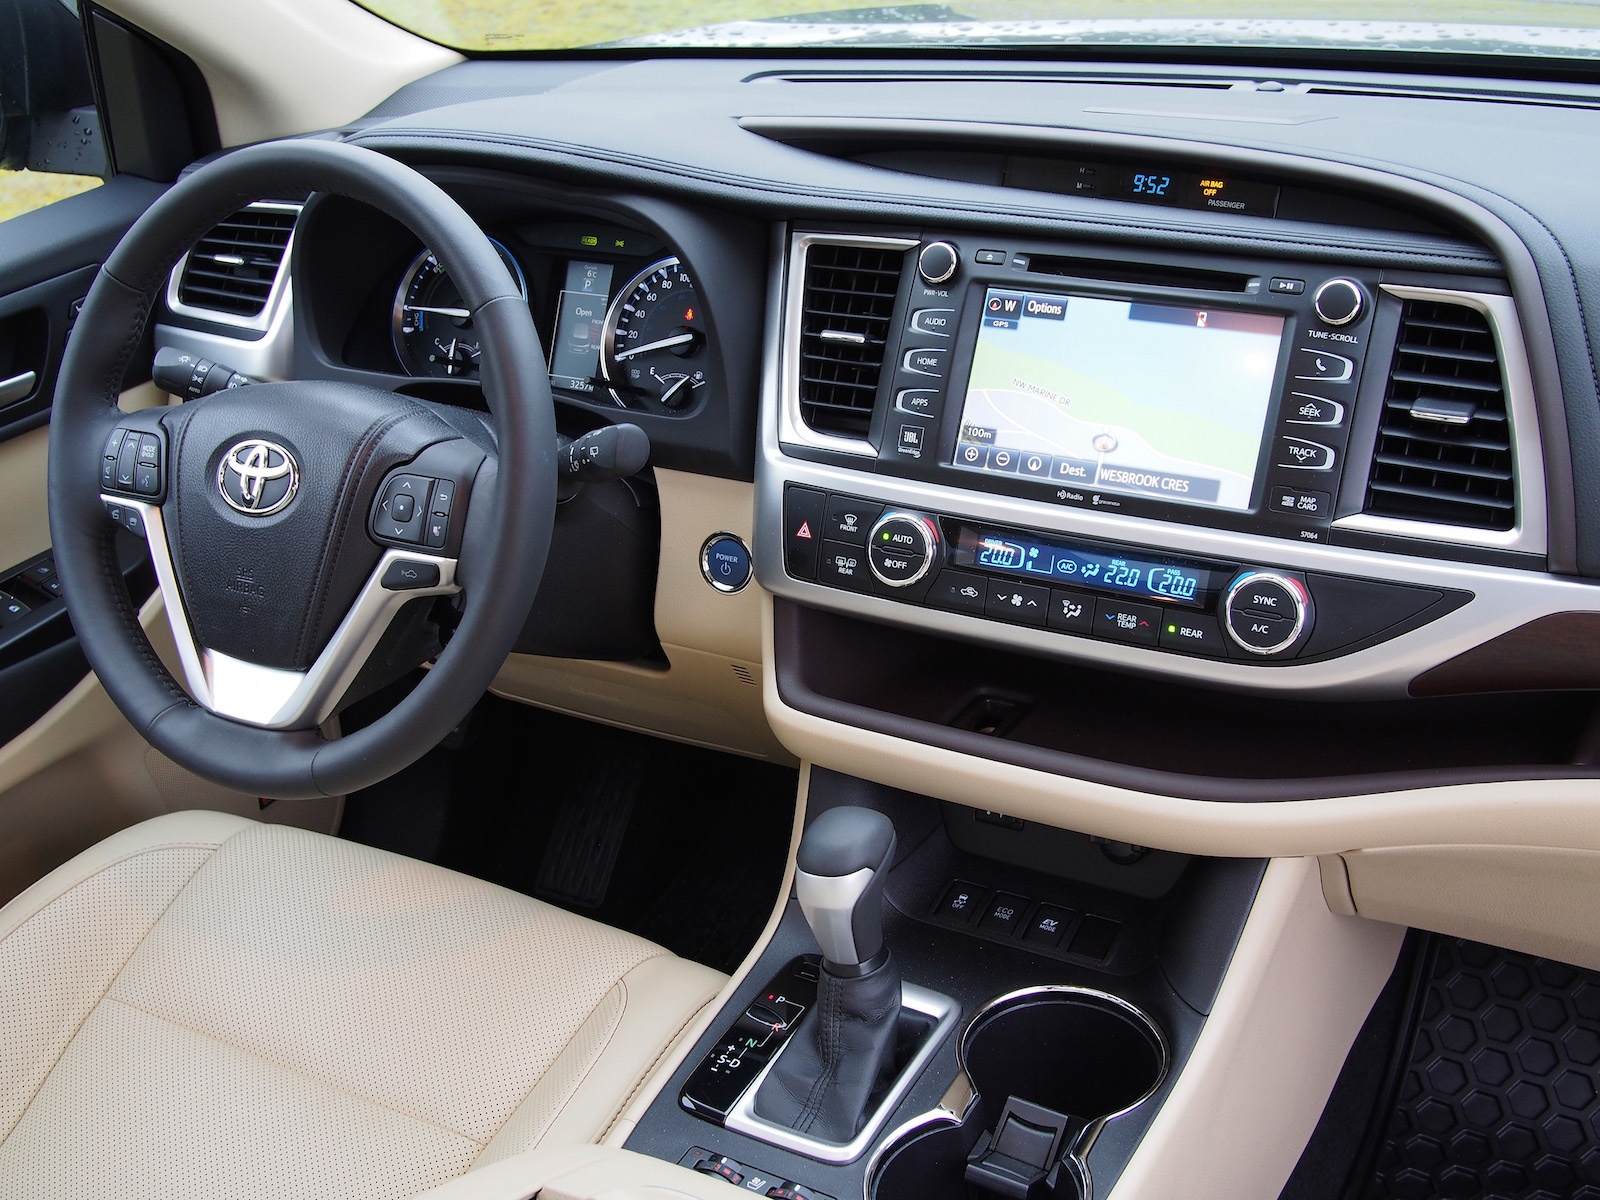 Chineseautoreview 車輪薦之 2015 Toyota Highlander Hybrid 試車報告